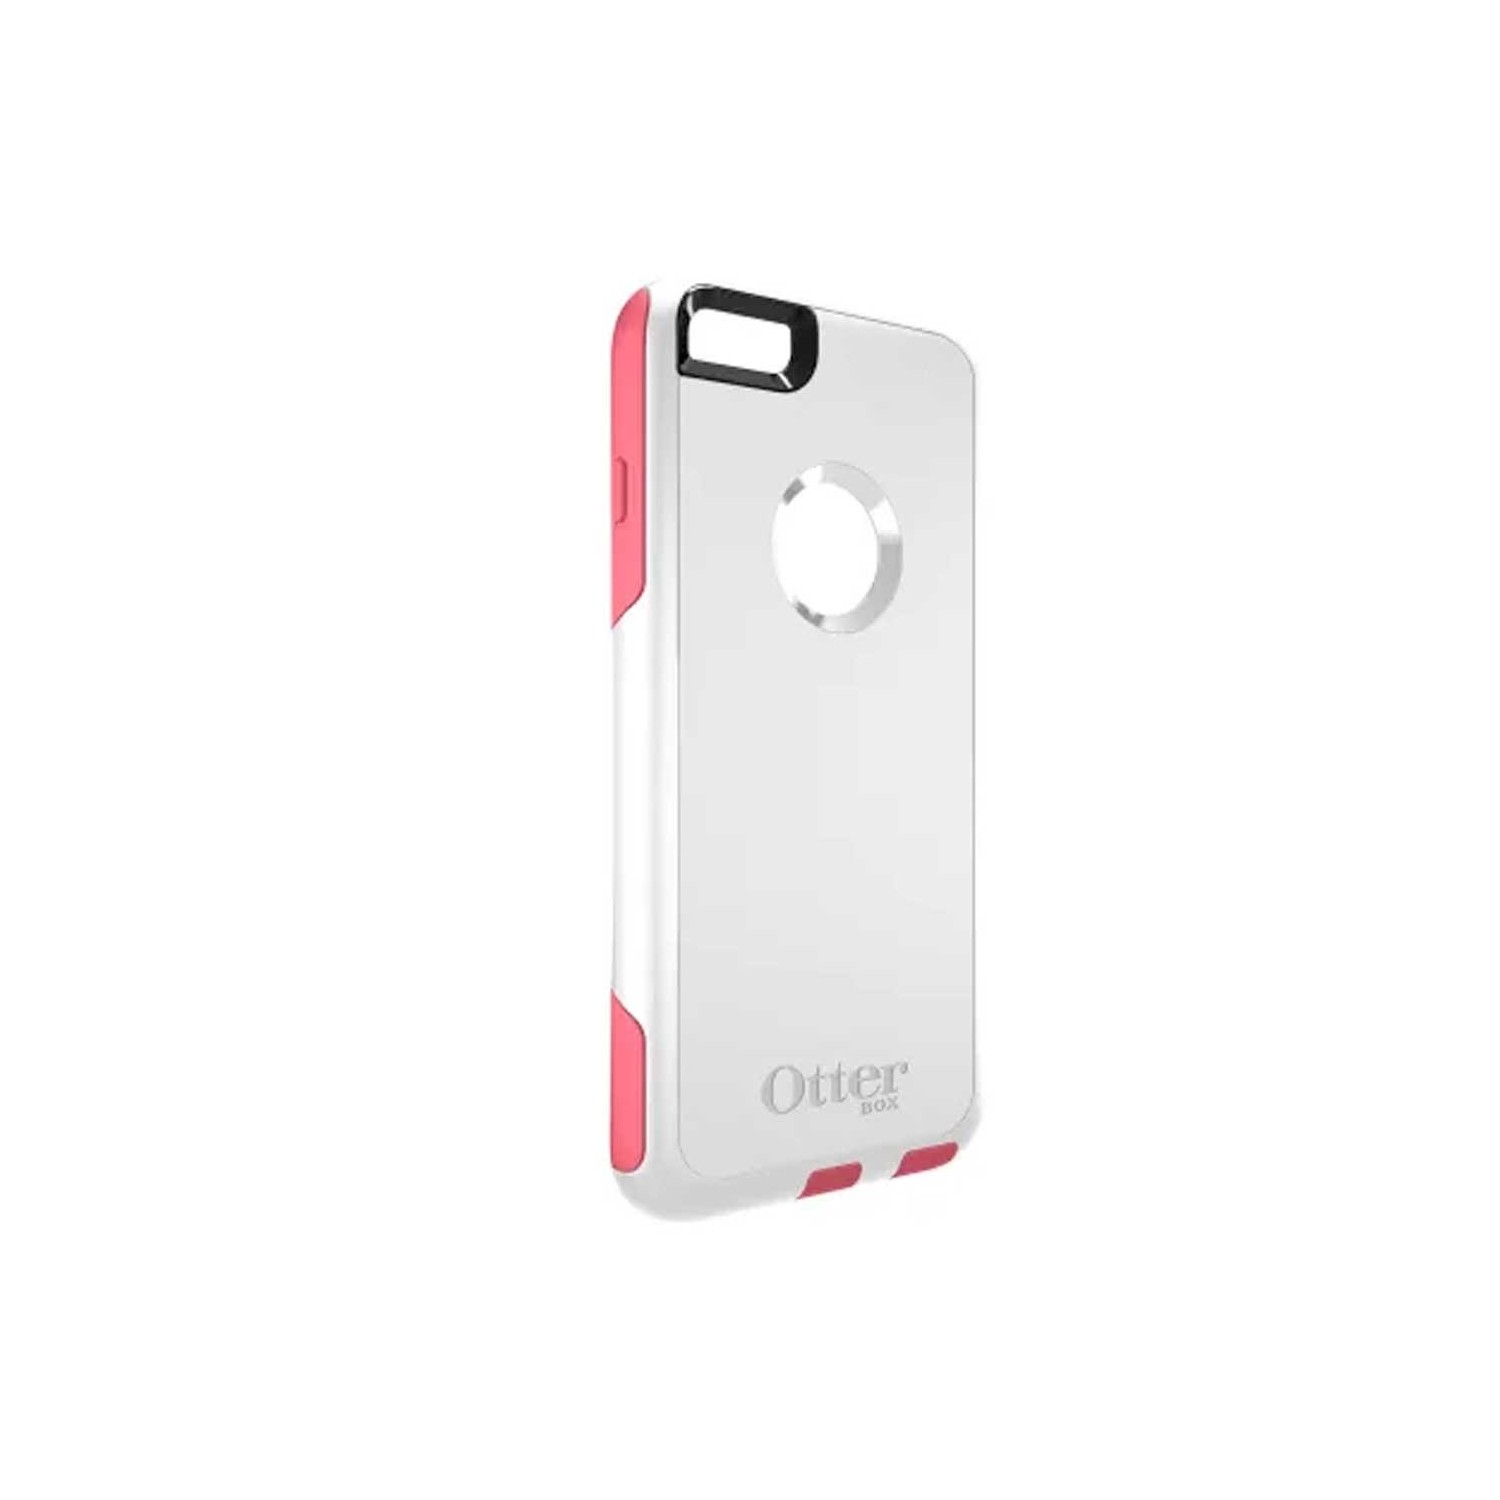 Case - Otterbox Commuter for Apple iPhone 6 Plus Neon Rose